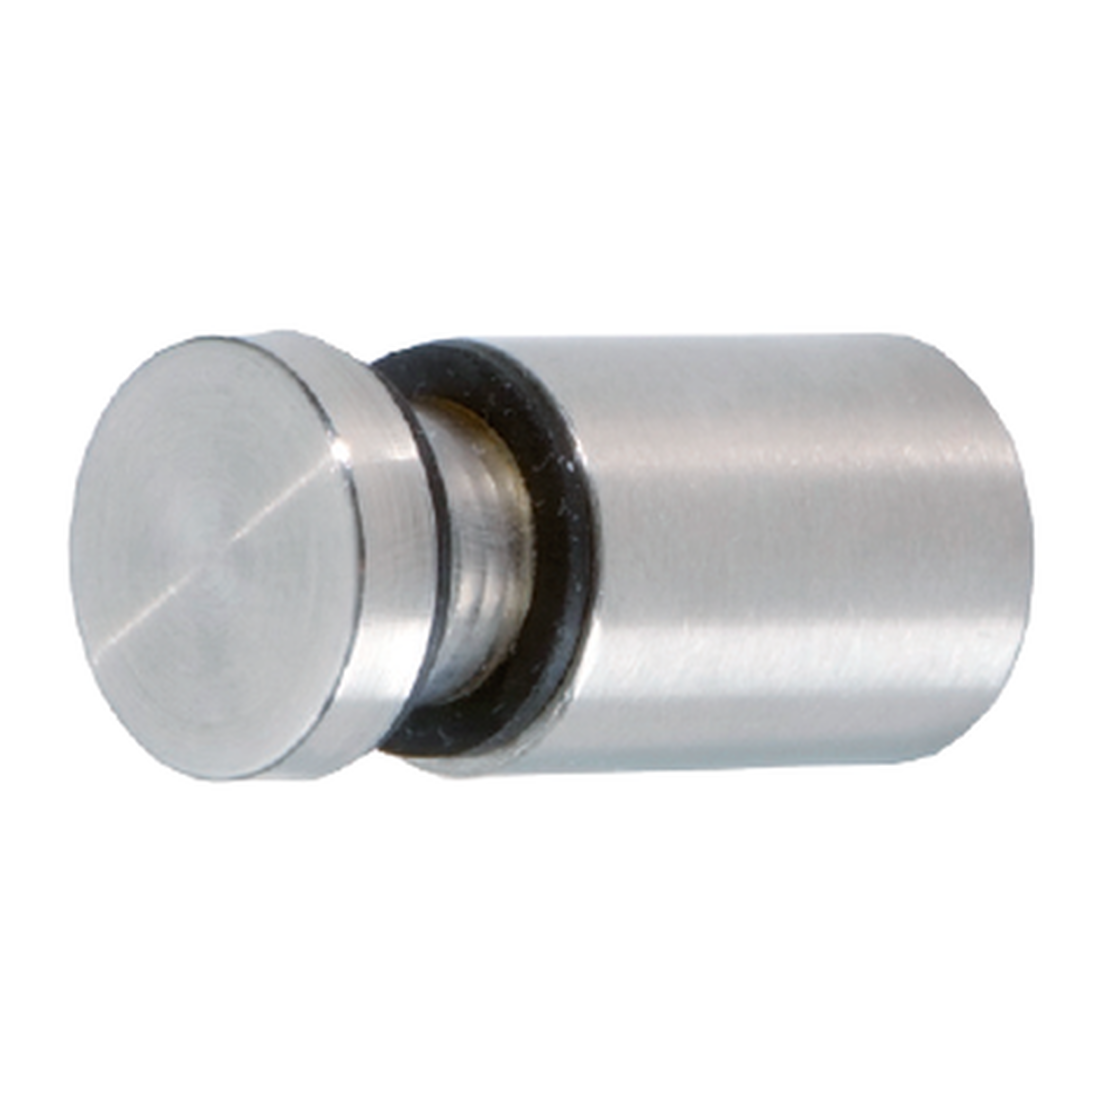 DISTANCE HOLDER FOR PLATE THICKNESS 6-8MM/6-10MM, ø 15MM, LENGTH 15MM